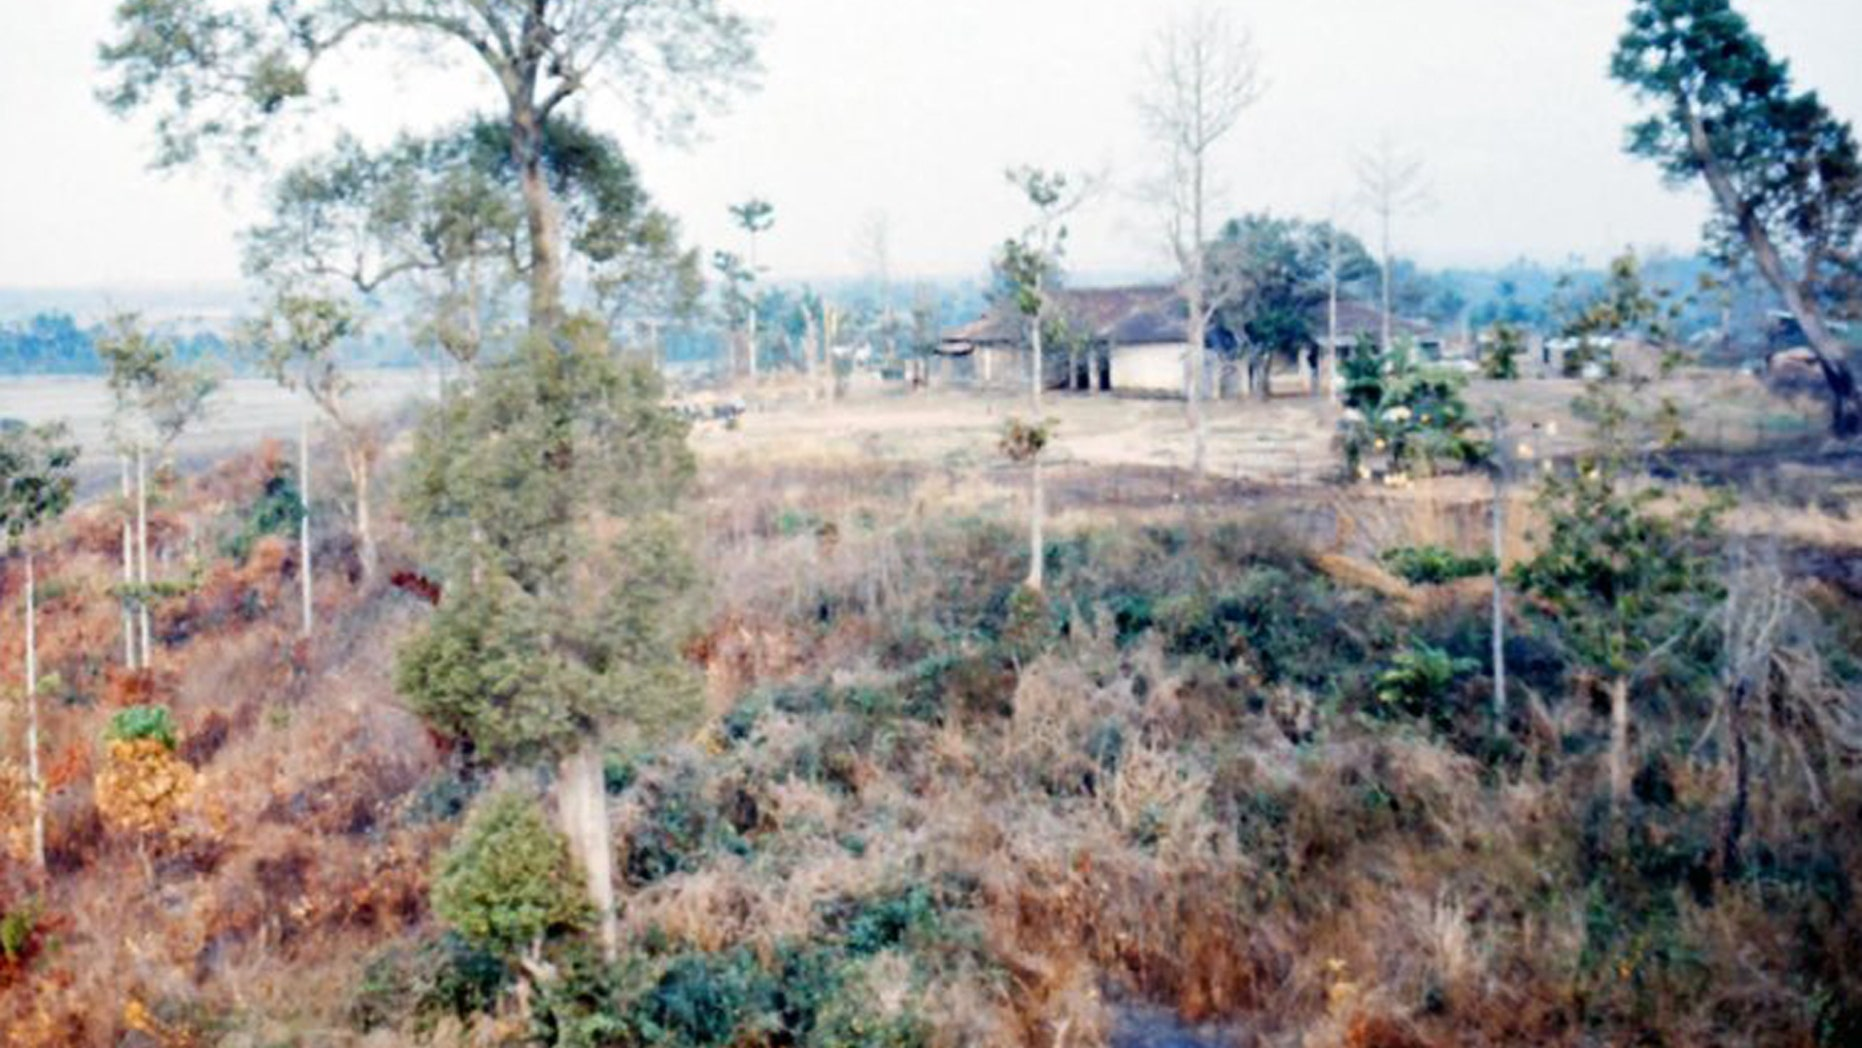 US planes sprayed 20 million gallons of herbicides throughout Vietnam during the Vietnam War. Dioxin, a contaminant of the orange agent, persists today.